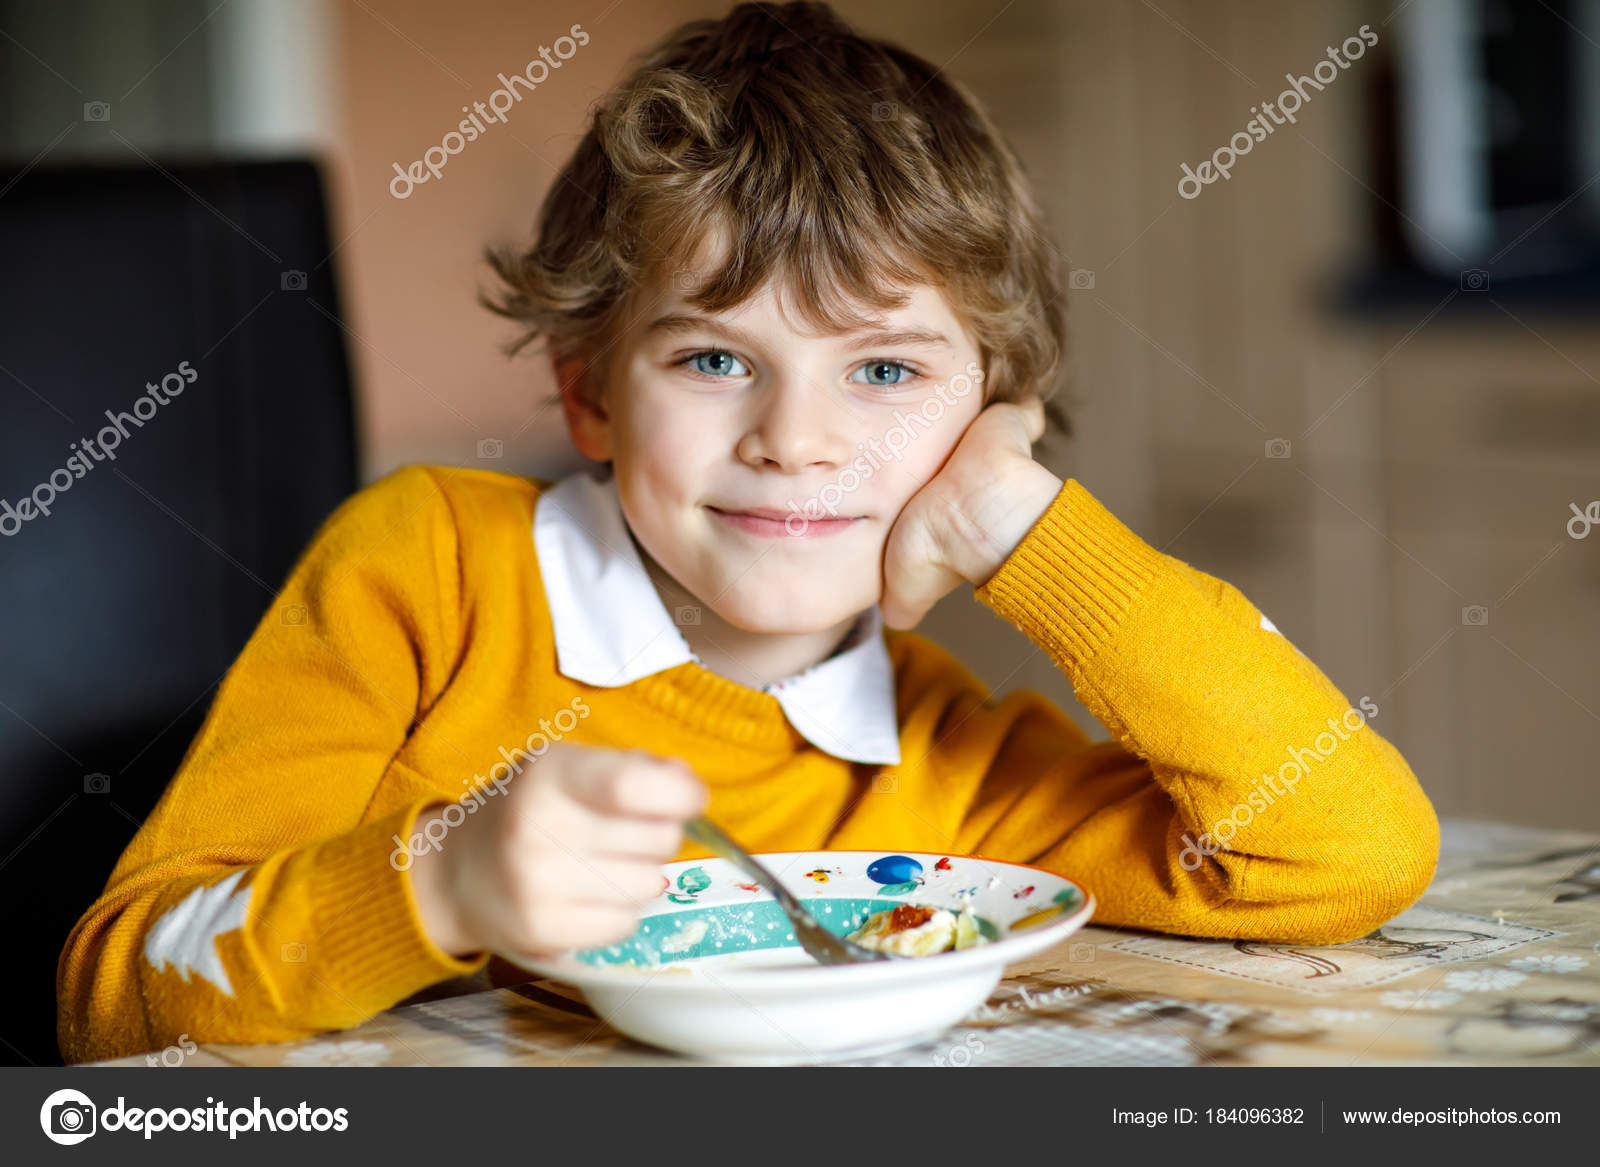 Adorable Little School Boy Eating Vegetable Soup Indoor Blond Child In Domestic Kitchen Or In School Canteen Cute Kid And Healthy Food Organic Vegan Soup